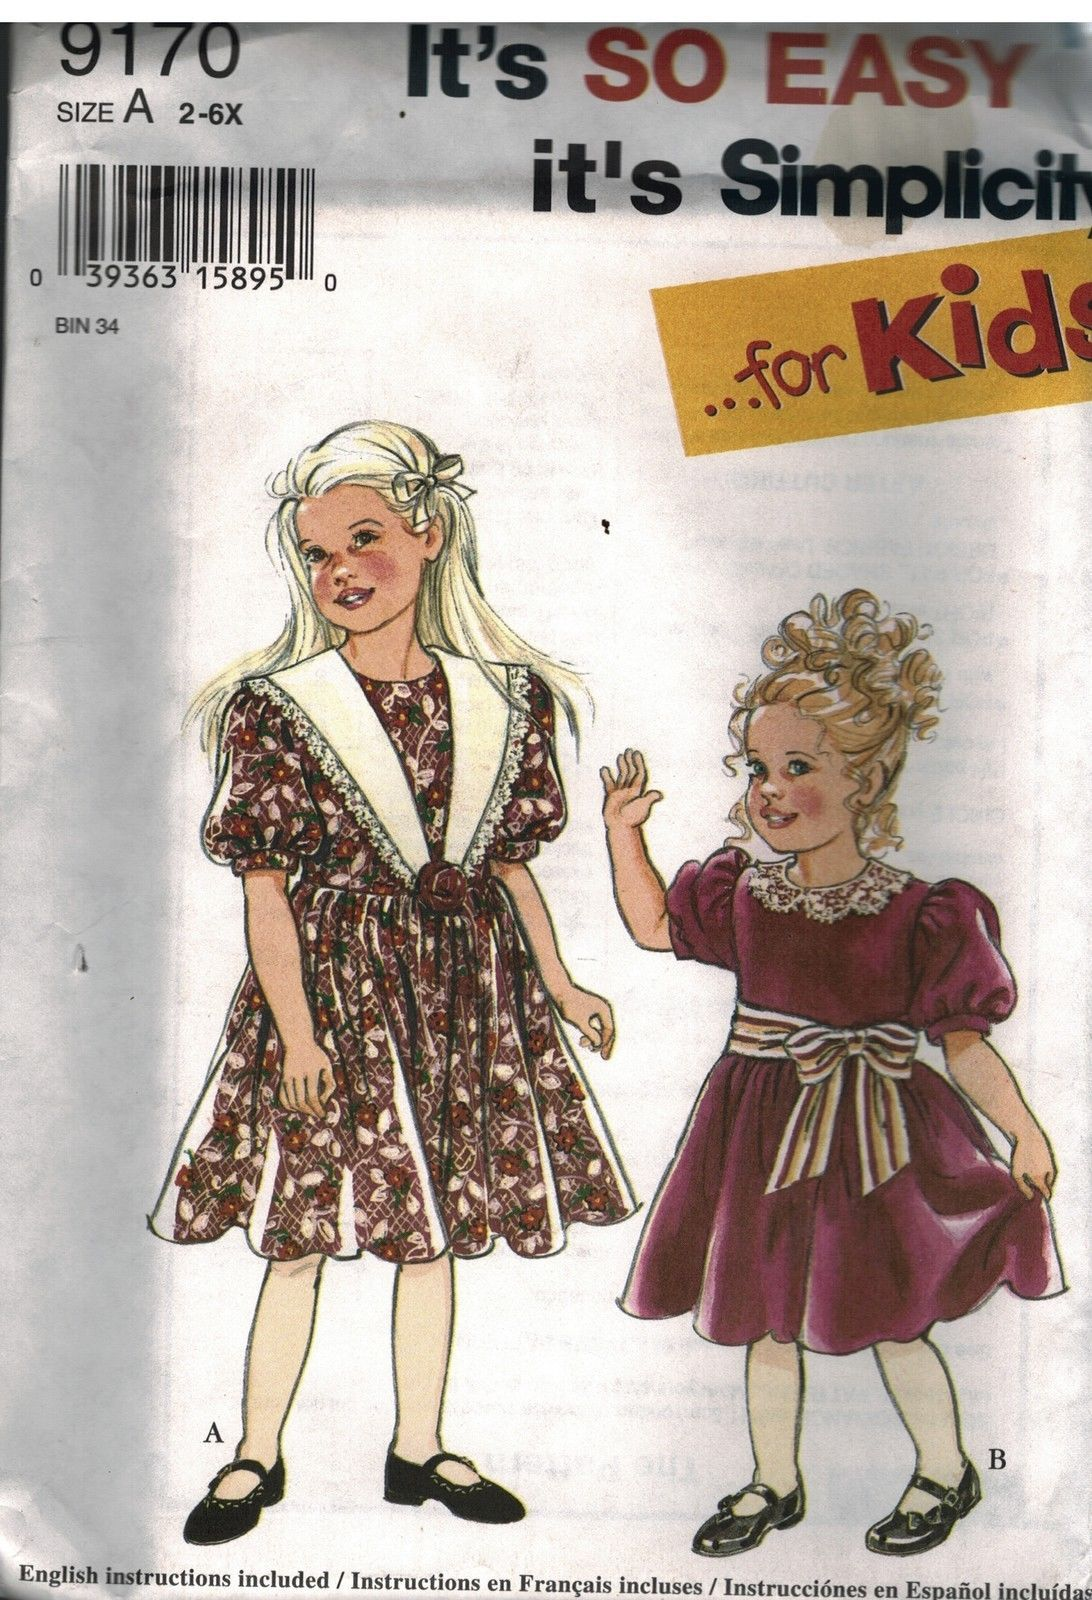 9170 UNCUT Vintage Simplicity Sewing Pattern Girls Party Dress Formal Easter SEW